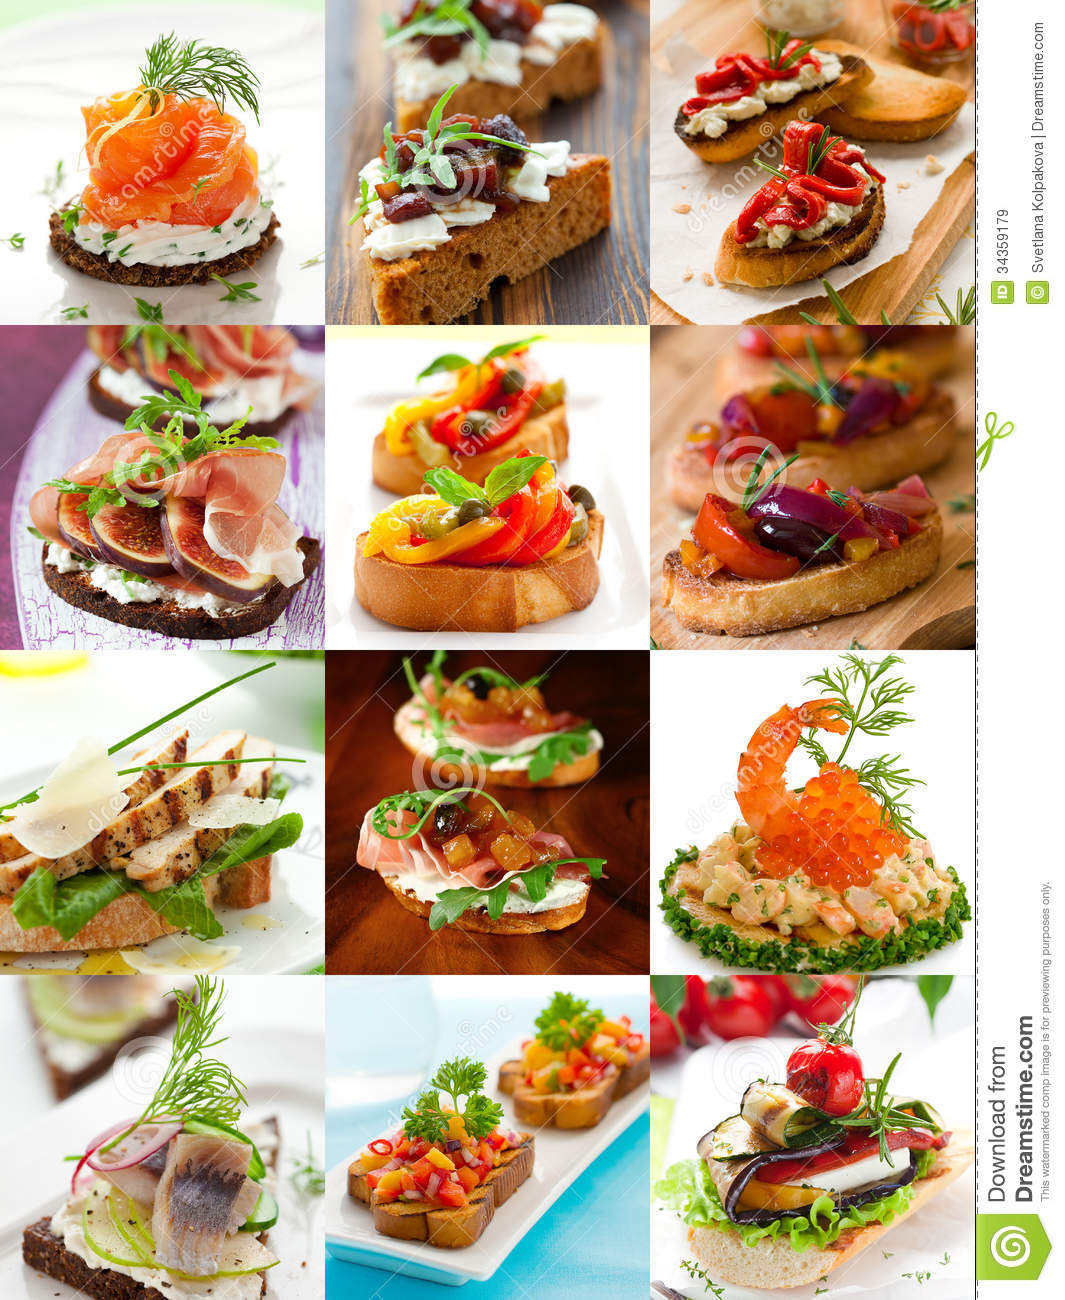 Sandwiches and canape collage royalty free stock images for Canape images